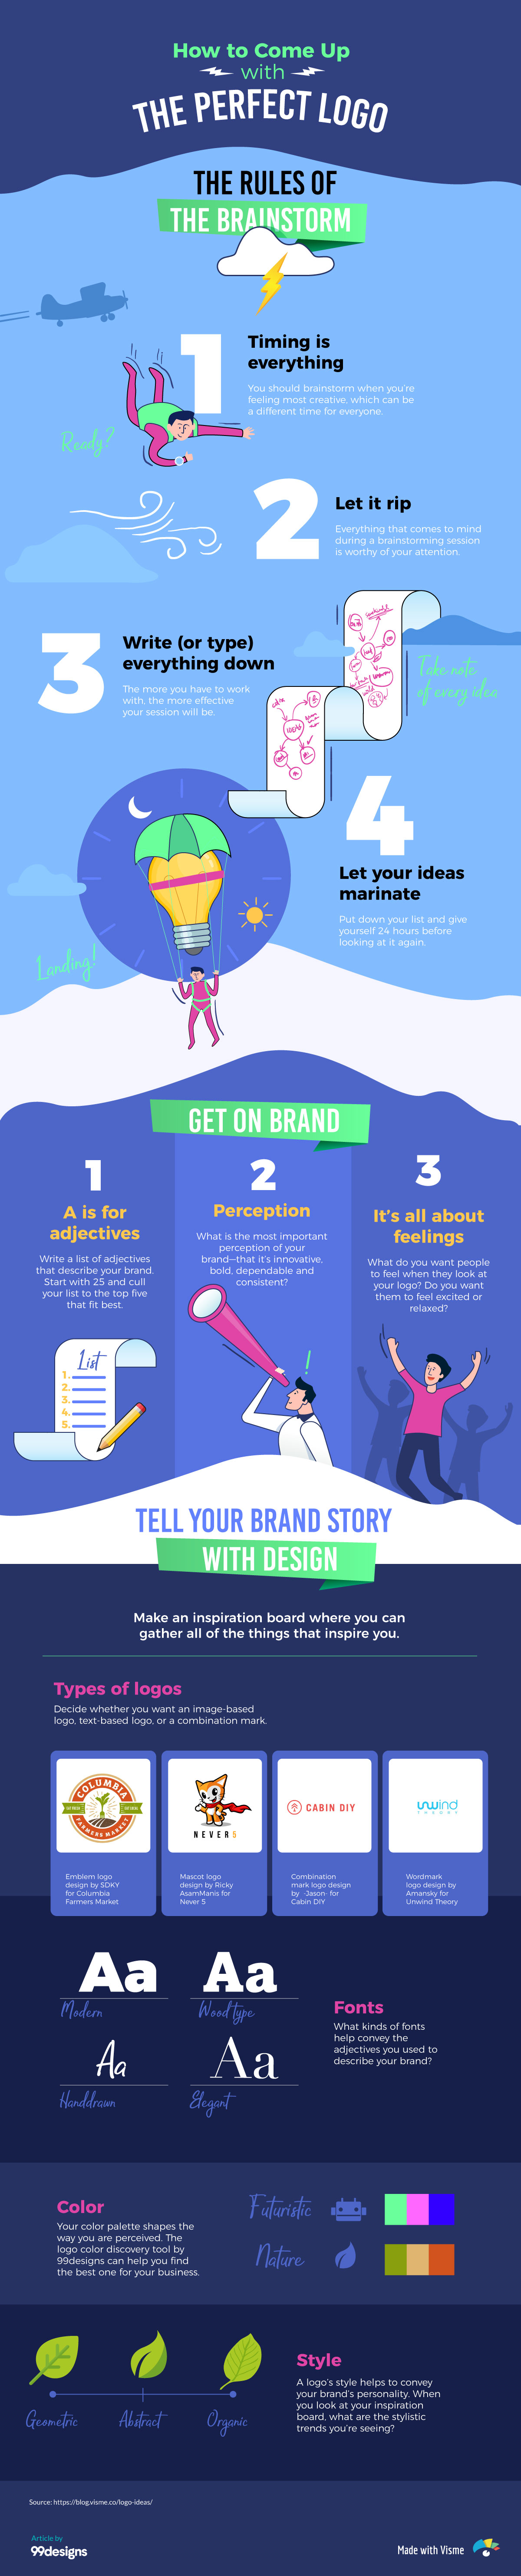 how to brainstorm logo ideas for your business infographic